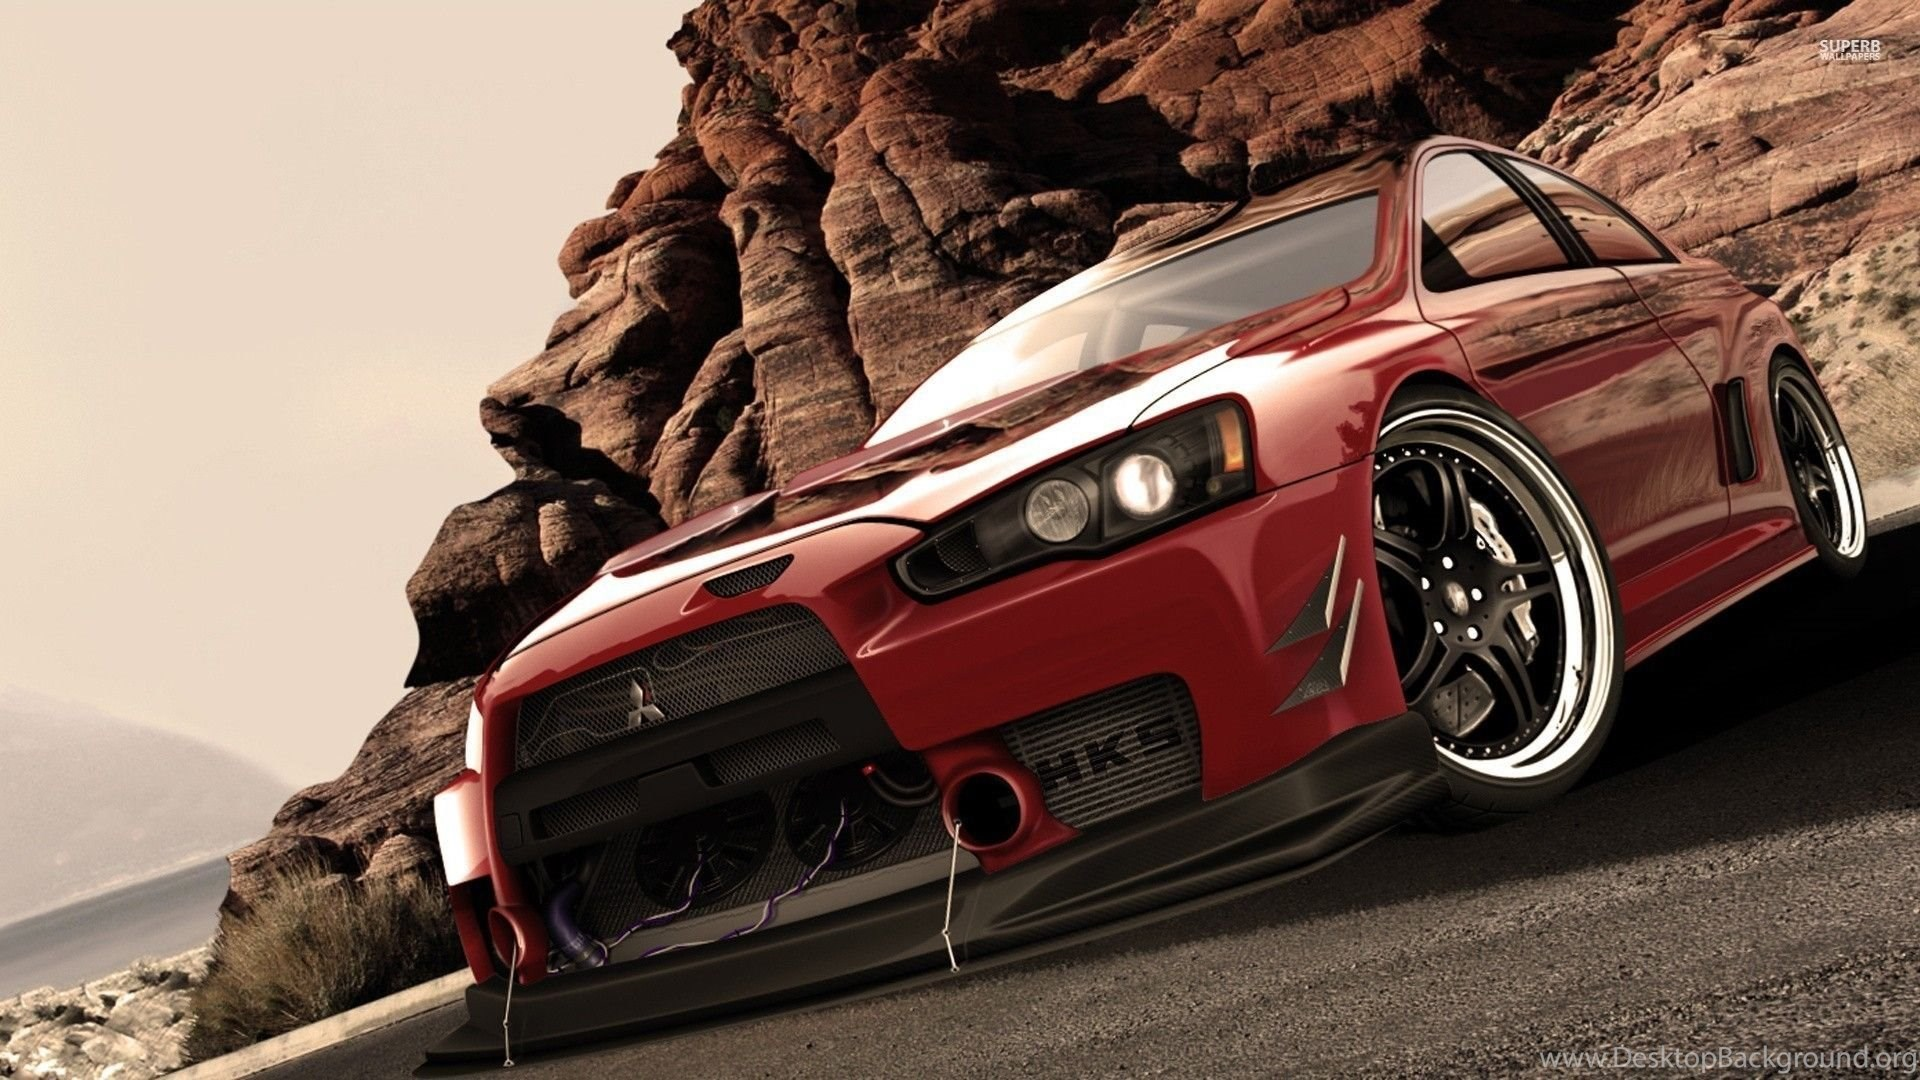 Mitsubishi Lancer Evolution X Wallpapers Car Wallpapers Desktop